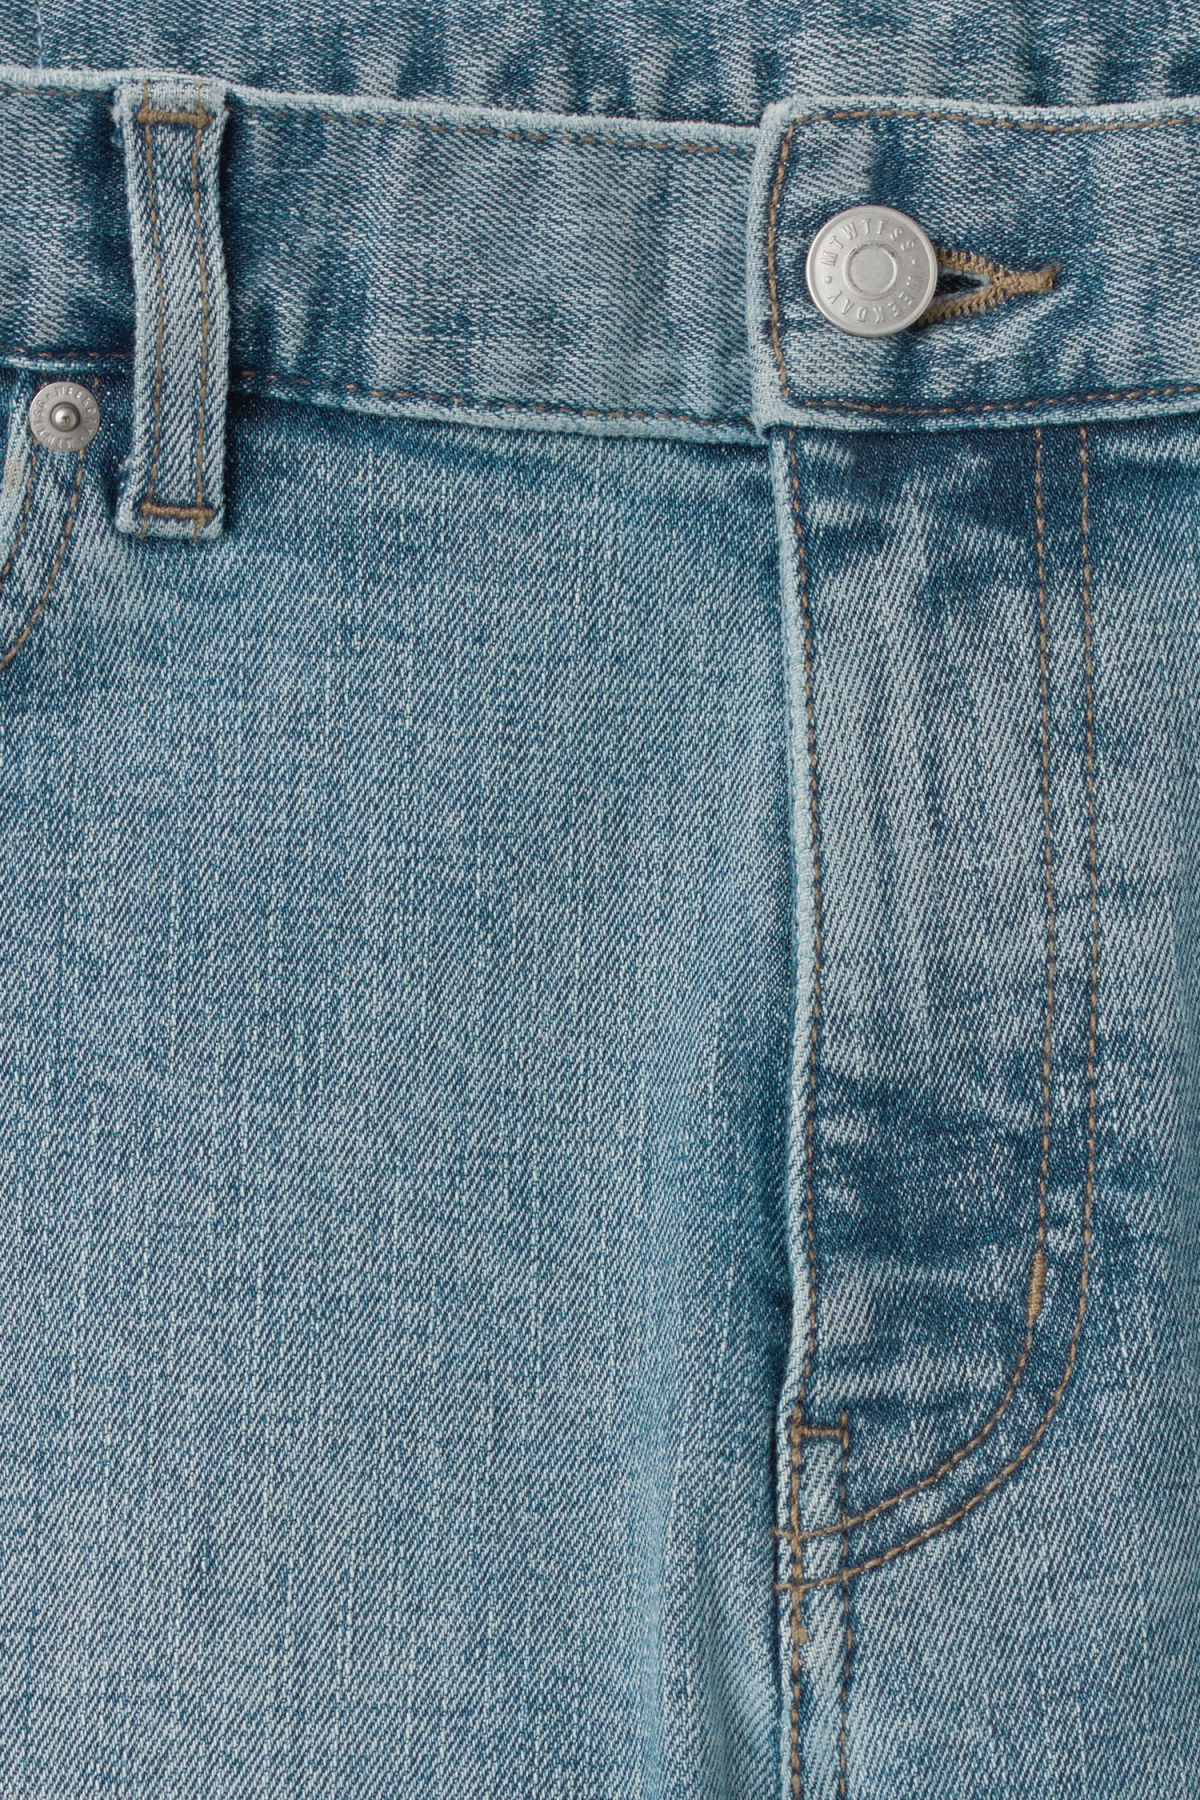 Detailed image of Weekday form washed blue cut jeans in blue